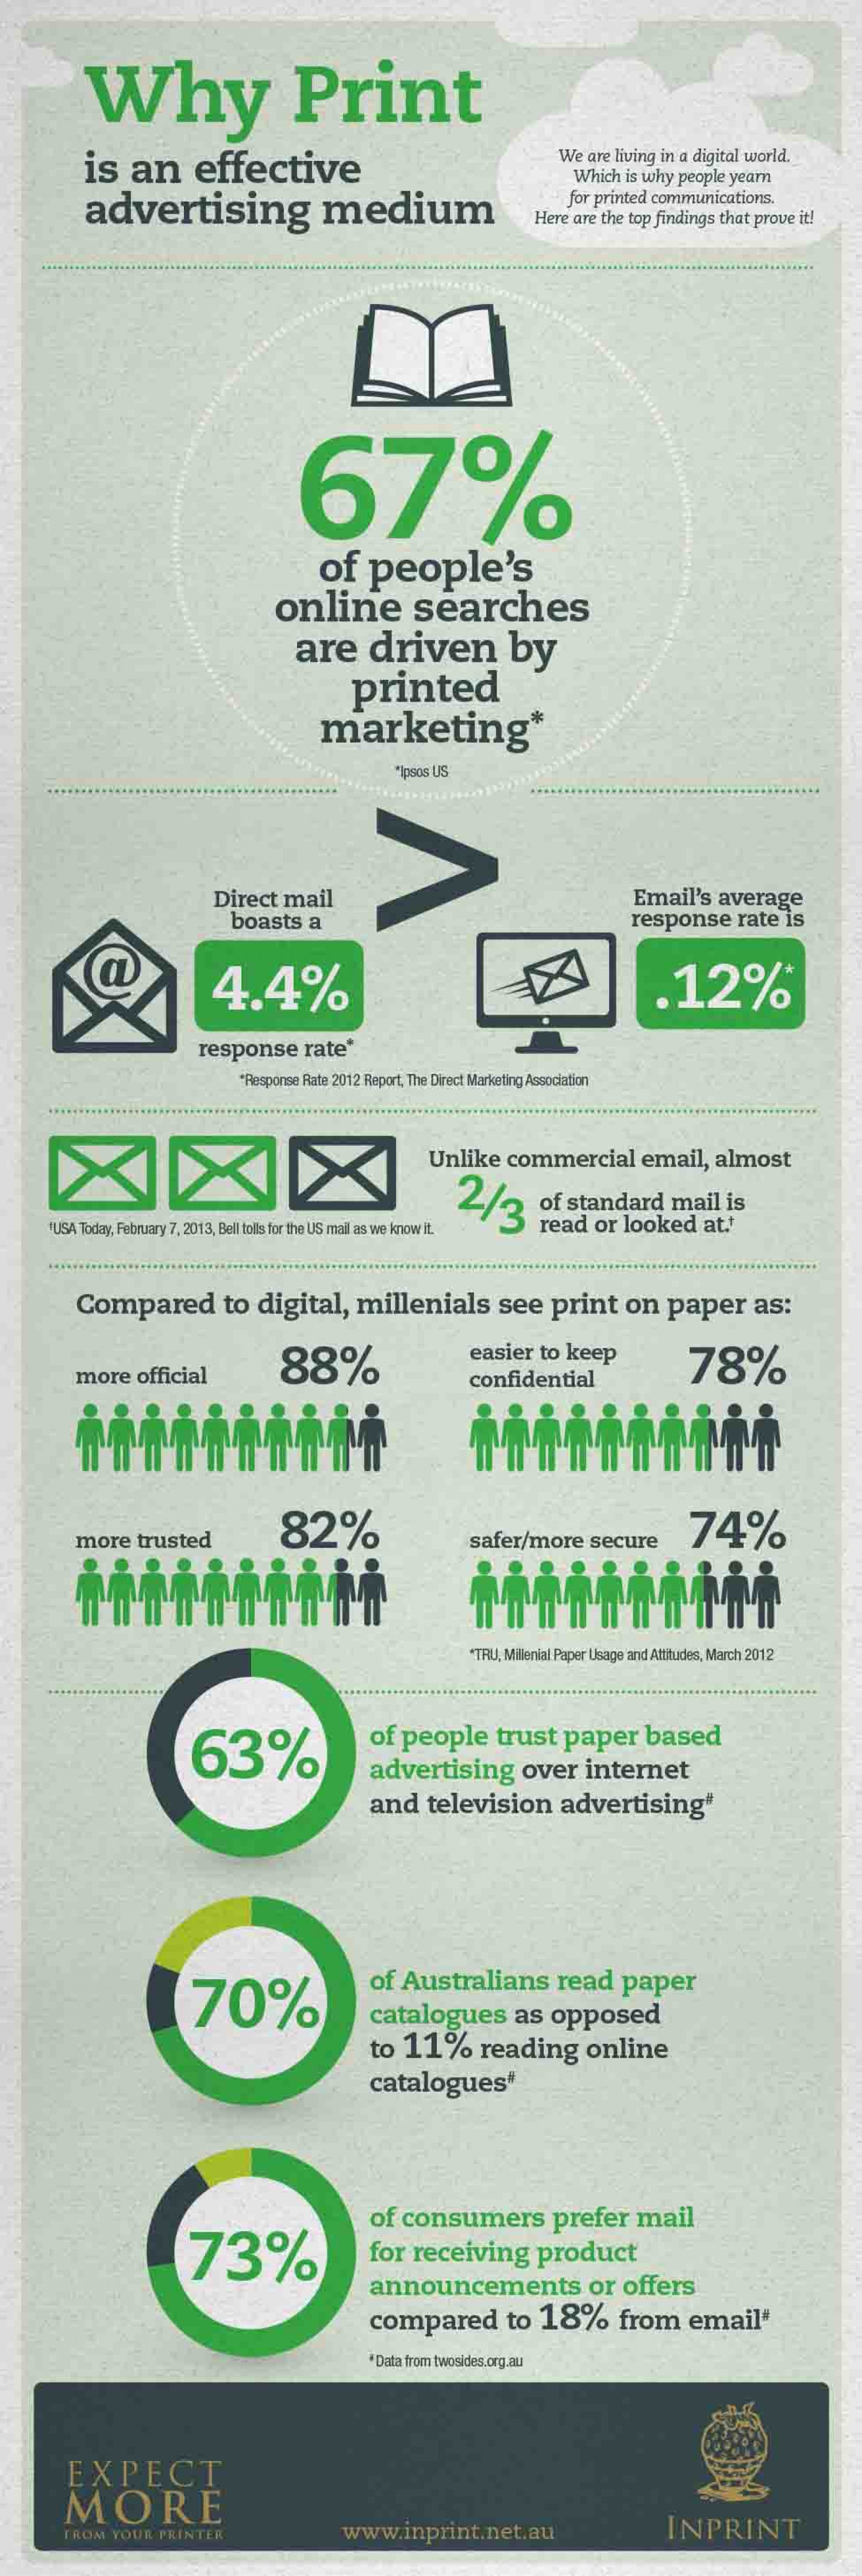 Why Print is an Effective Advertising Medium Infographic